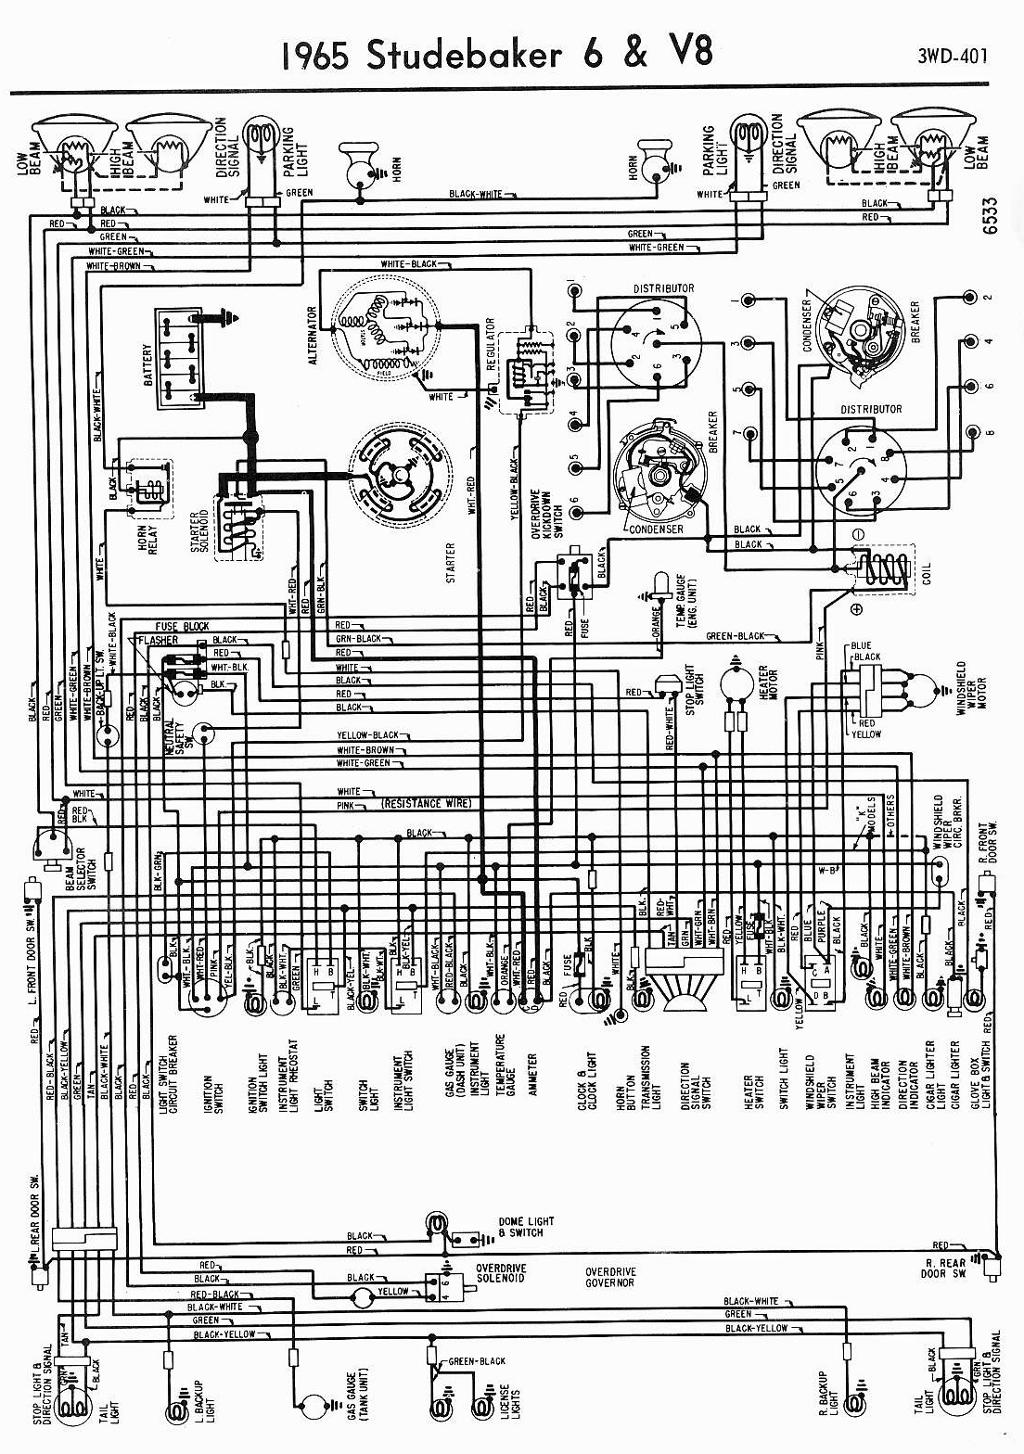 1965 Triumph Spitfire Wiring Diagram Schematic Diagrams 1973 Tr6 Mkii Trusted